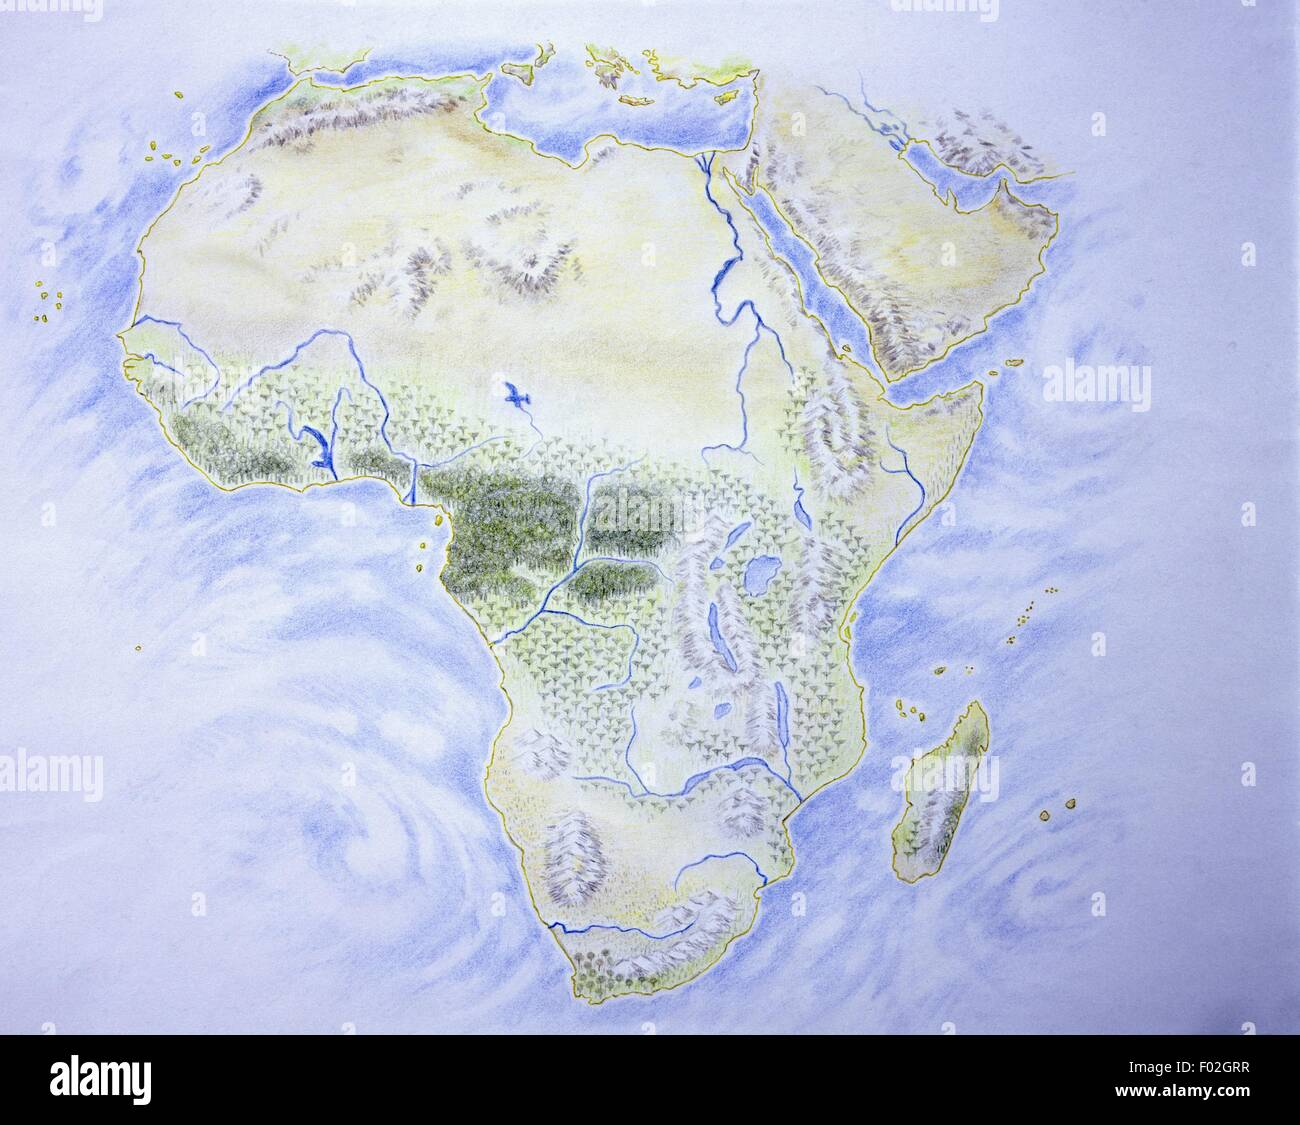 Cartography - Map of Africa, illustration - Stock Image